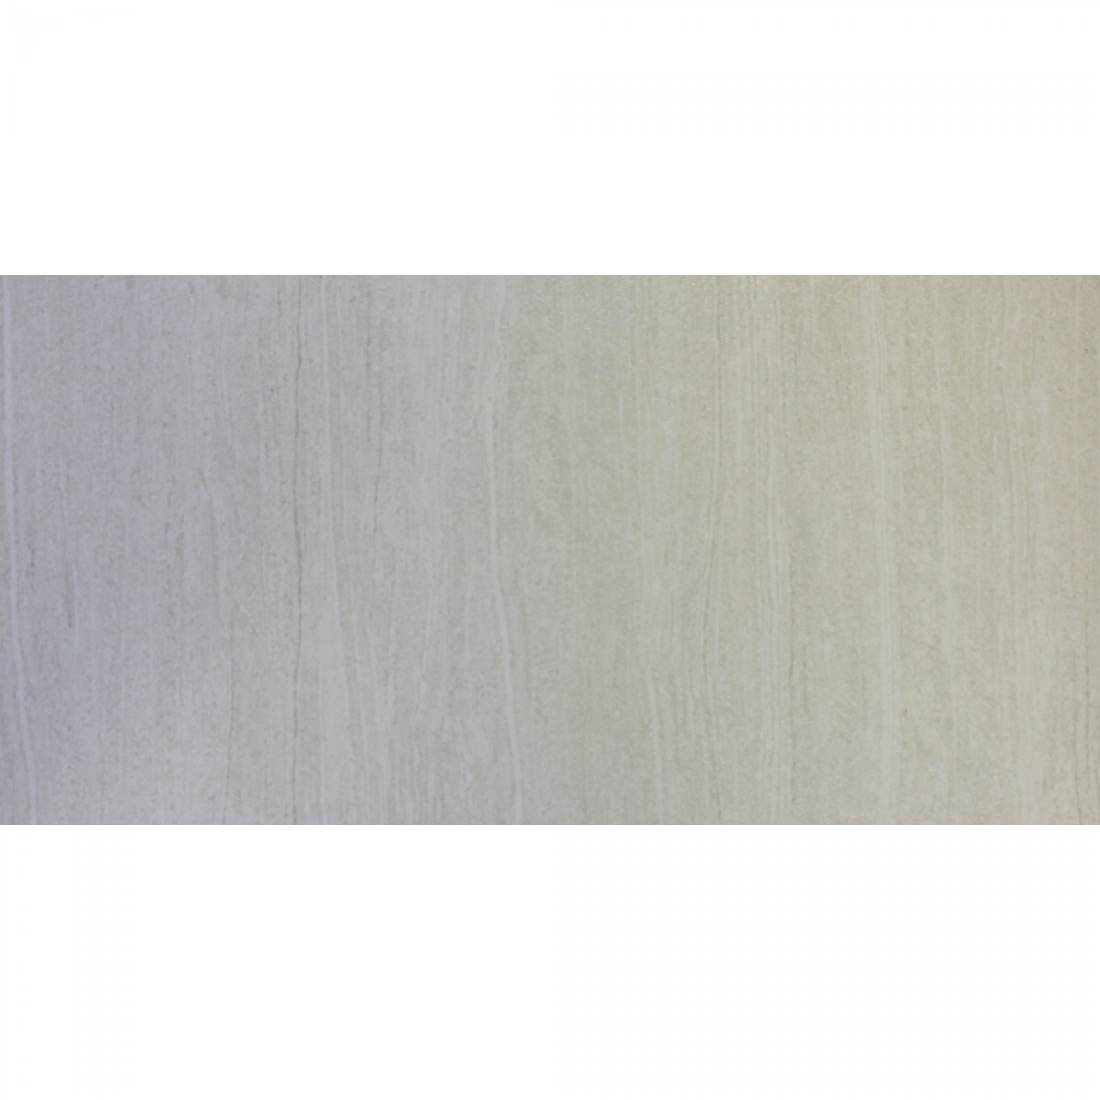 Striato 30x60 White Matt R9 1